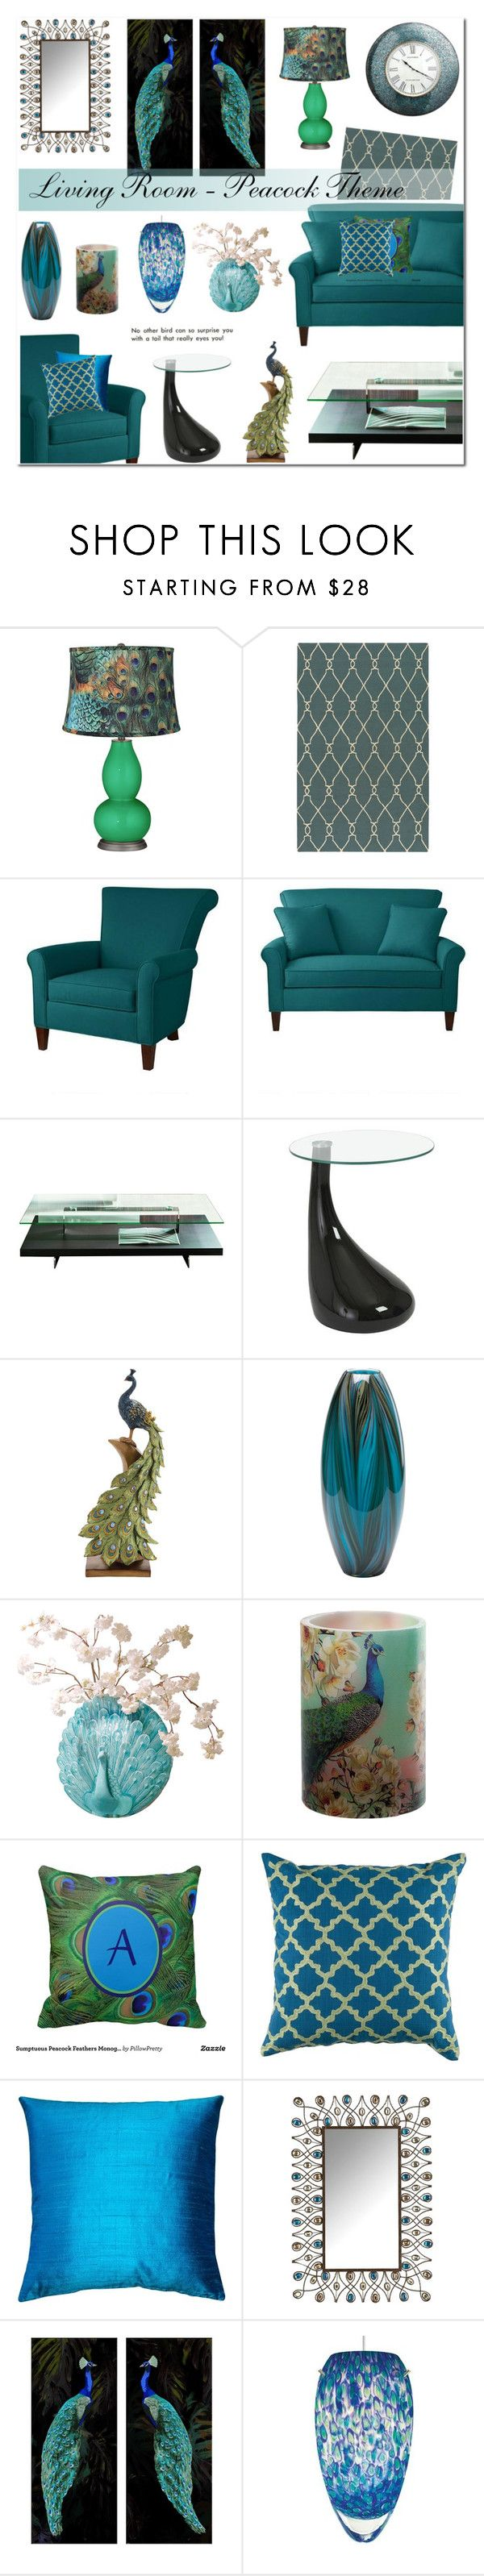 """Living Room - Peacock Theme"" by anyasdesigns ❤ liked on Polyvore featuring interior, interiors, interior design, home, home decor, interior decorating, Surya, Prospect + Vine, Pacini & Cappellini and Cyan Design"